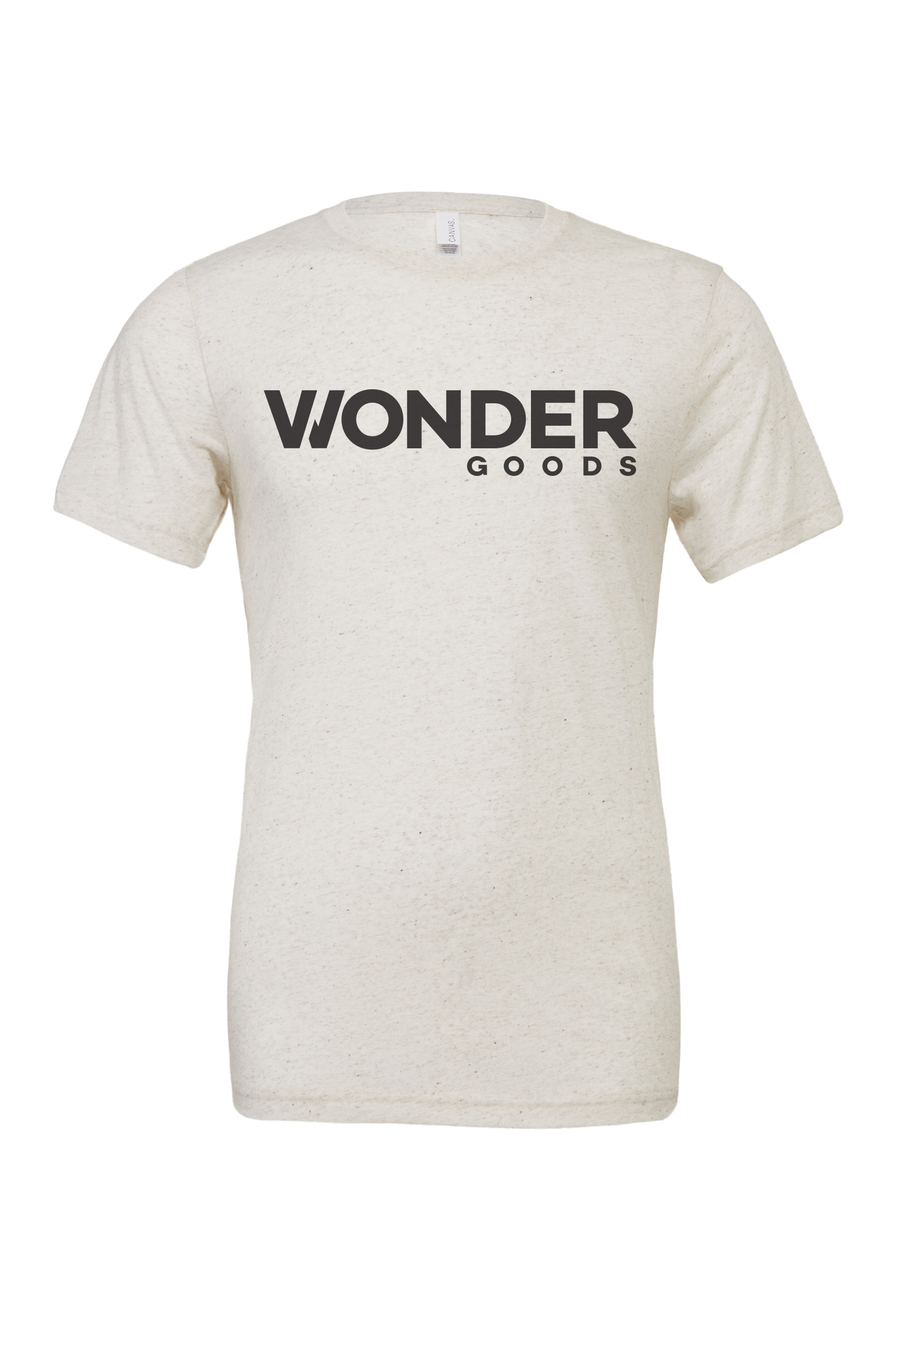 Wonder Goods t-shirt with classic logo in oatmeal.